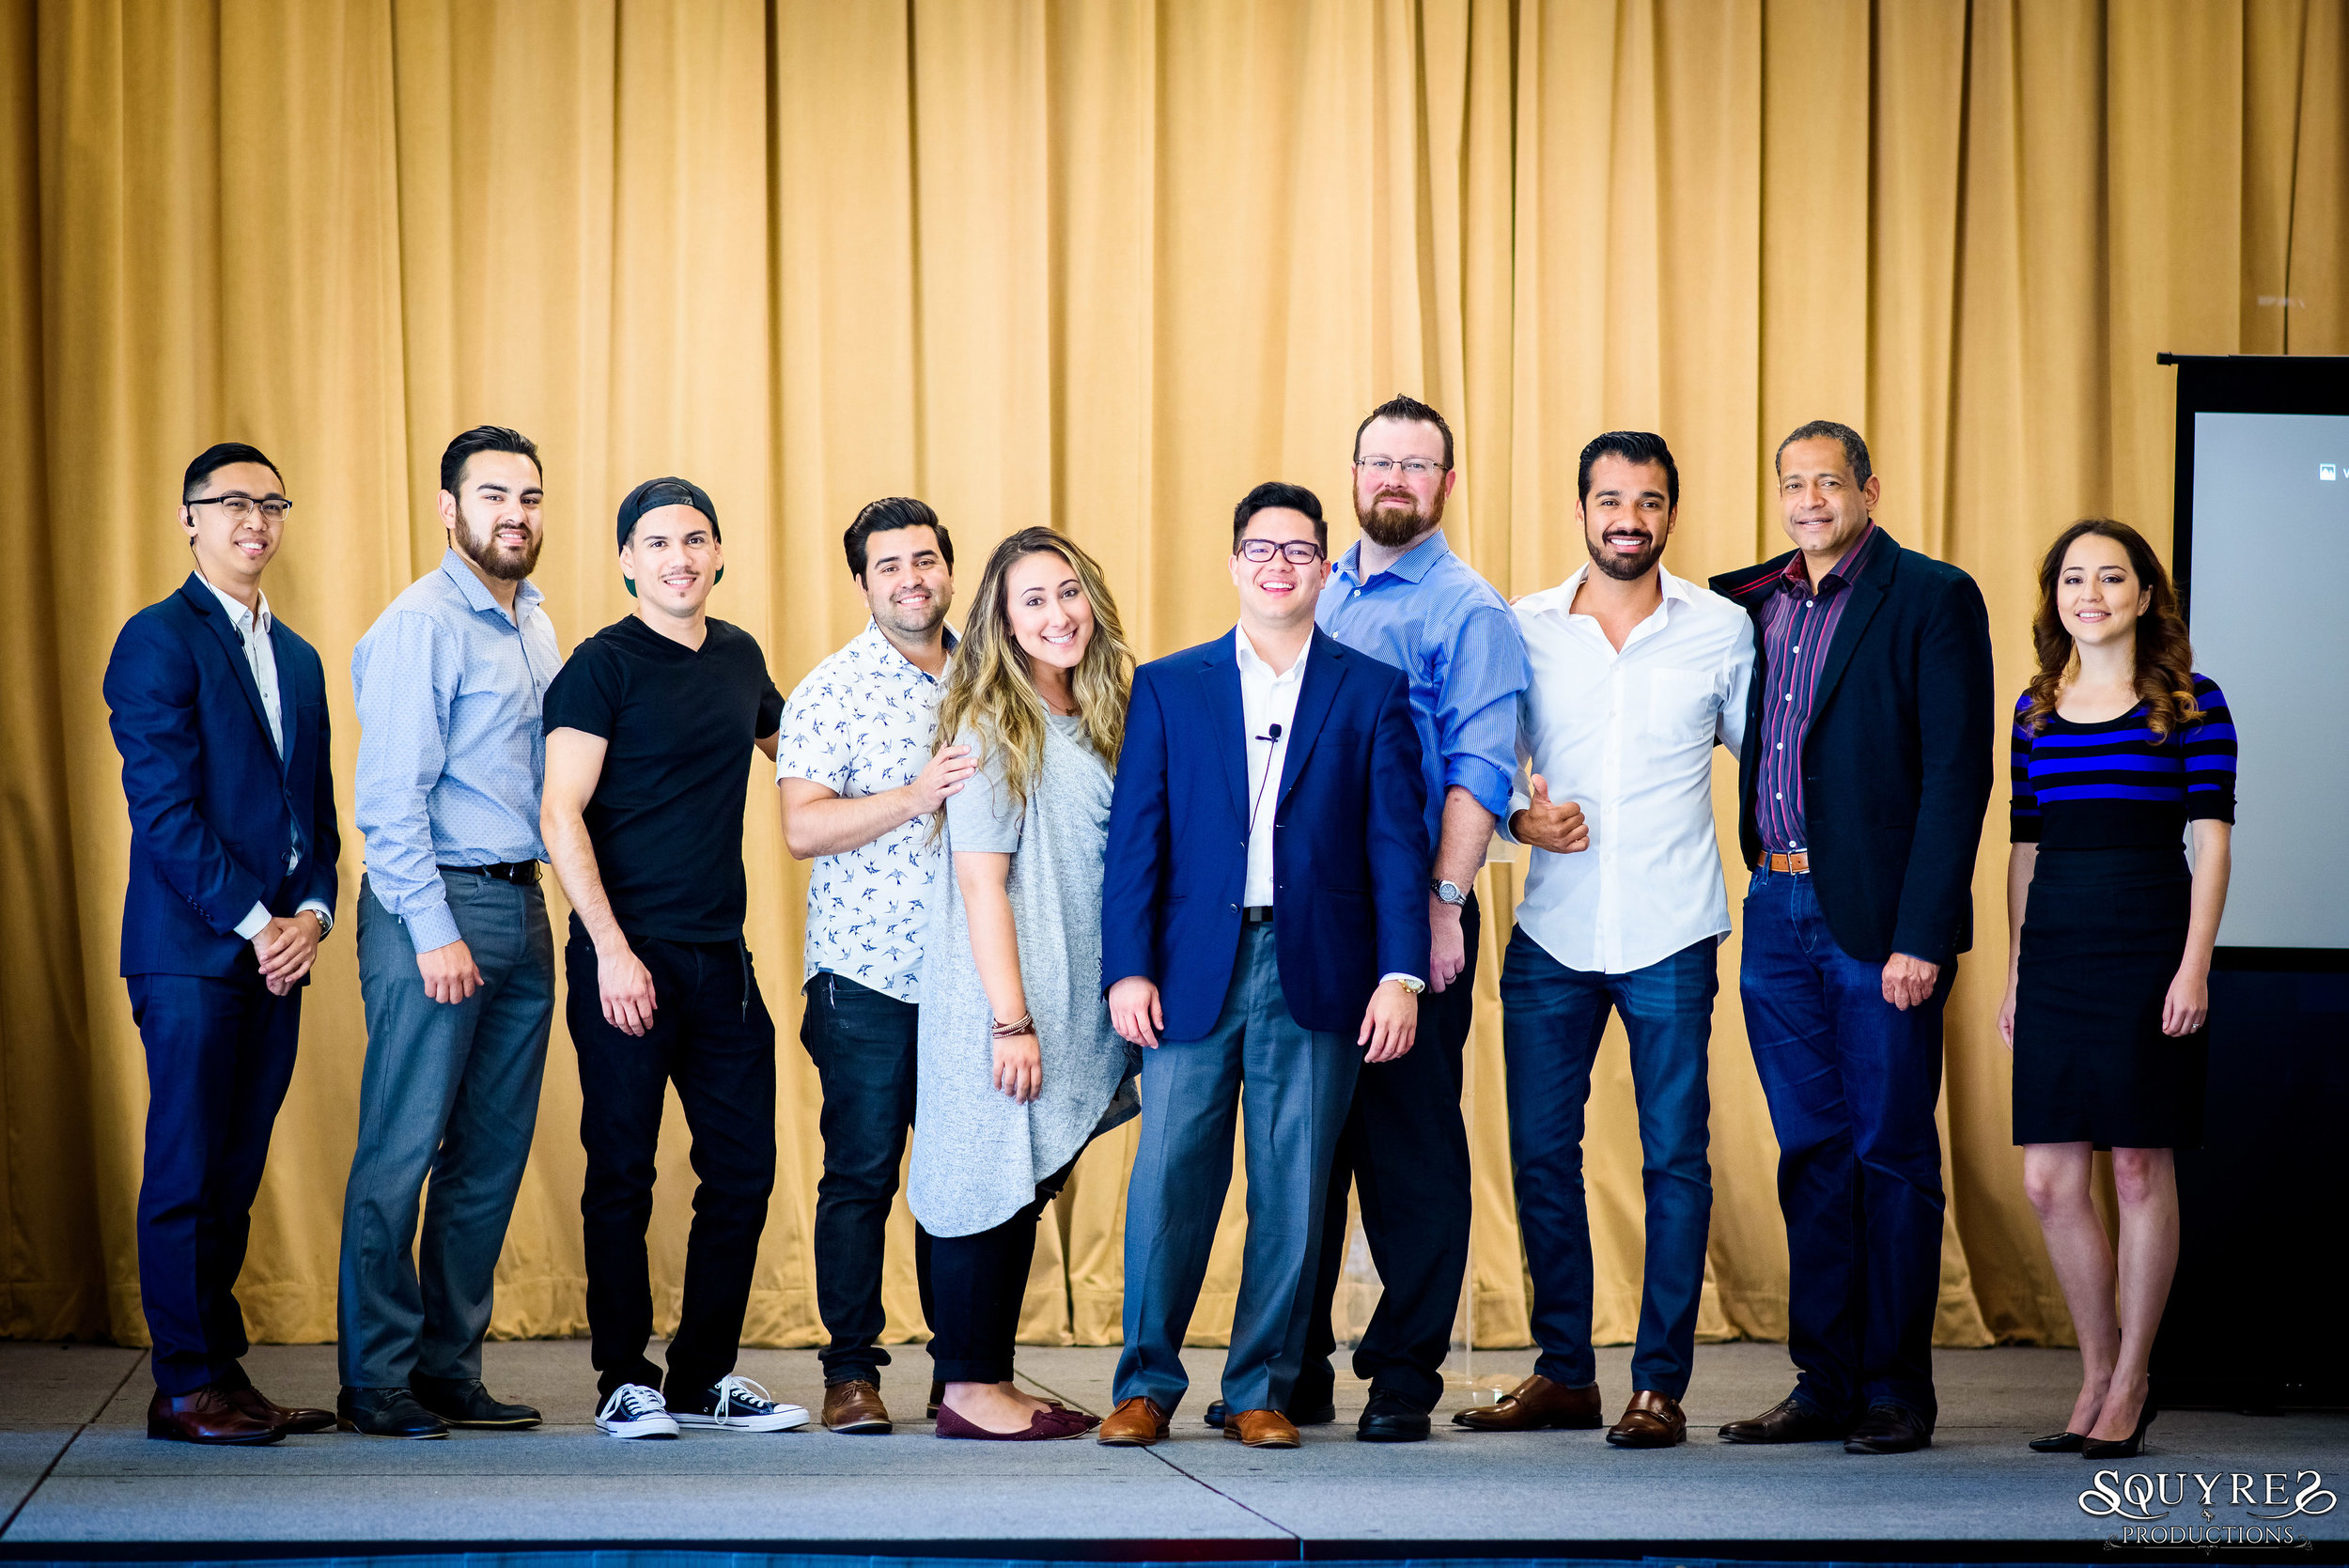 The Young Money Savvy Team and [most of] the speakers at the OPET Conference on April 9th 2017.   From left to right: Kevin Alcazar, Elias Flores, Peter Zavala, Michael Alfaro, Corinne Alfaro, Jeremy Logeot, Jeff Oliver, Art Valdivia, Juan Batista, Erika Alvarado.